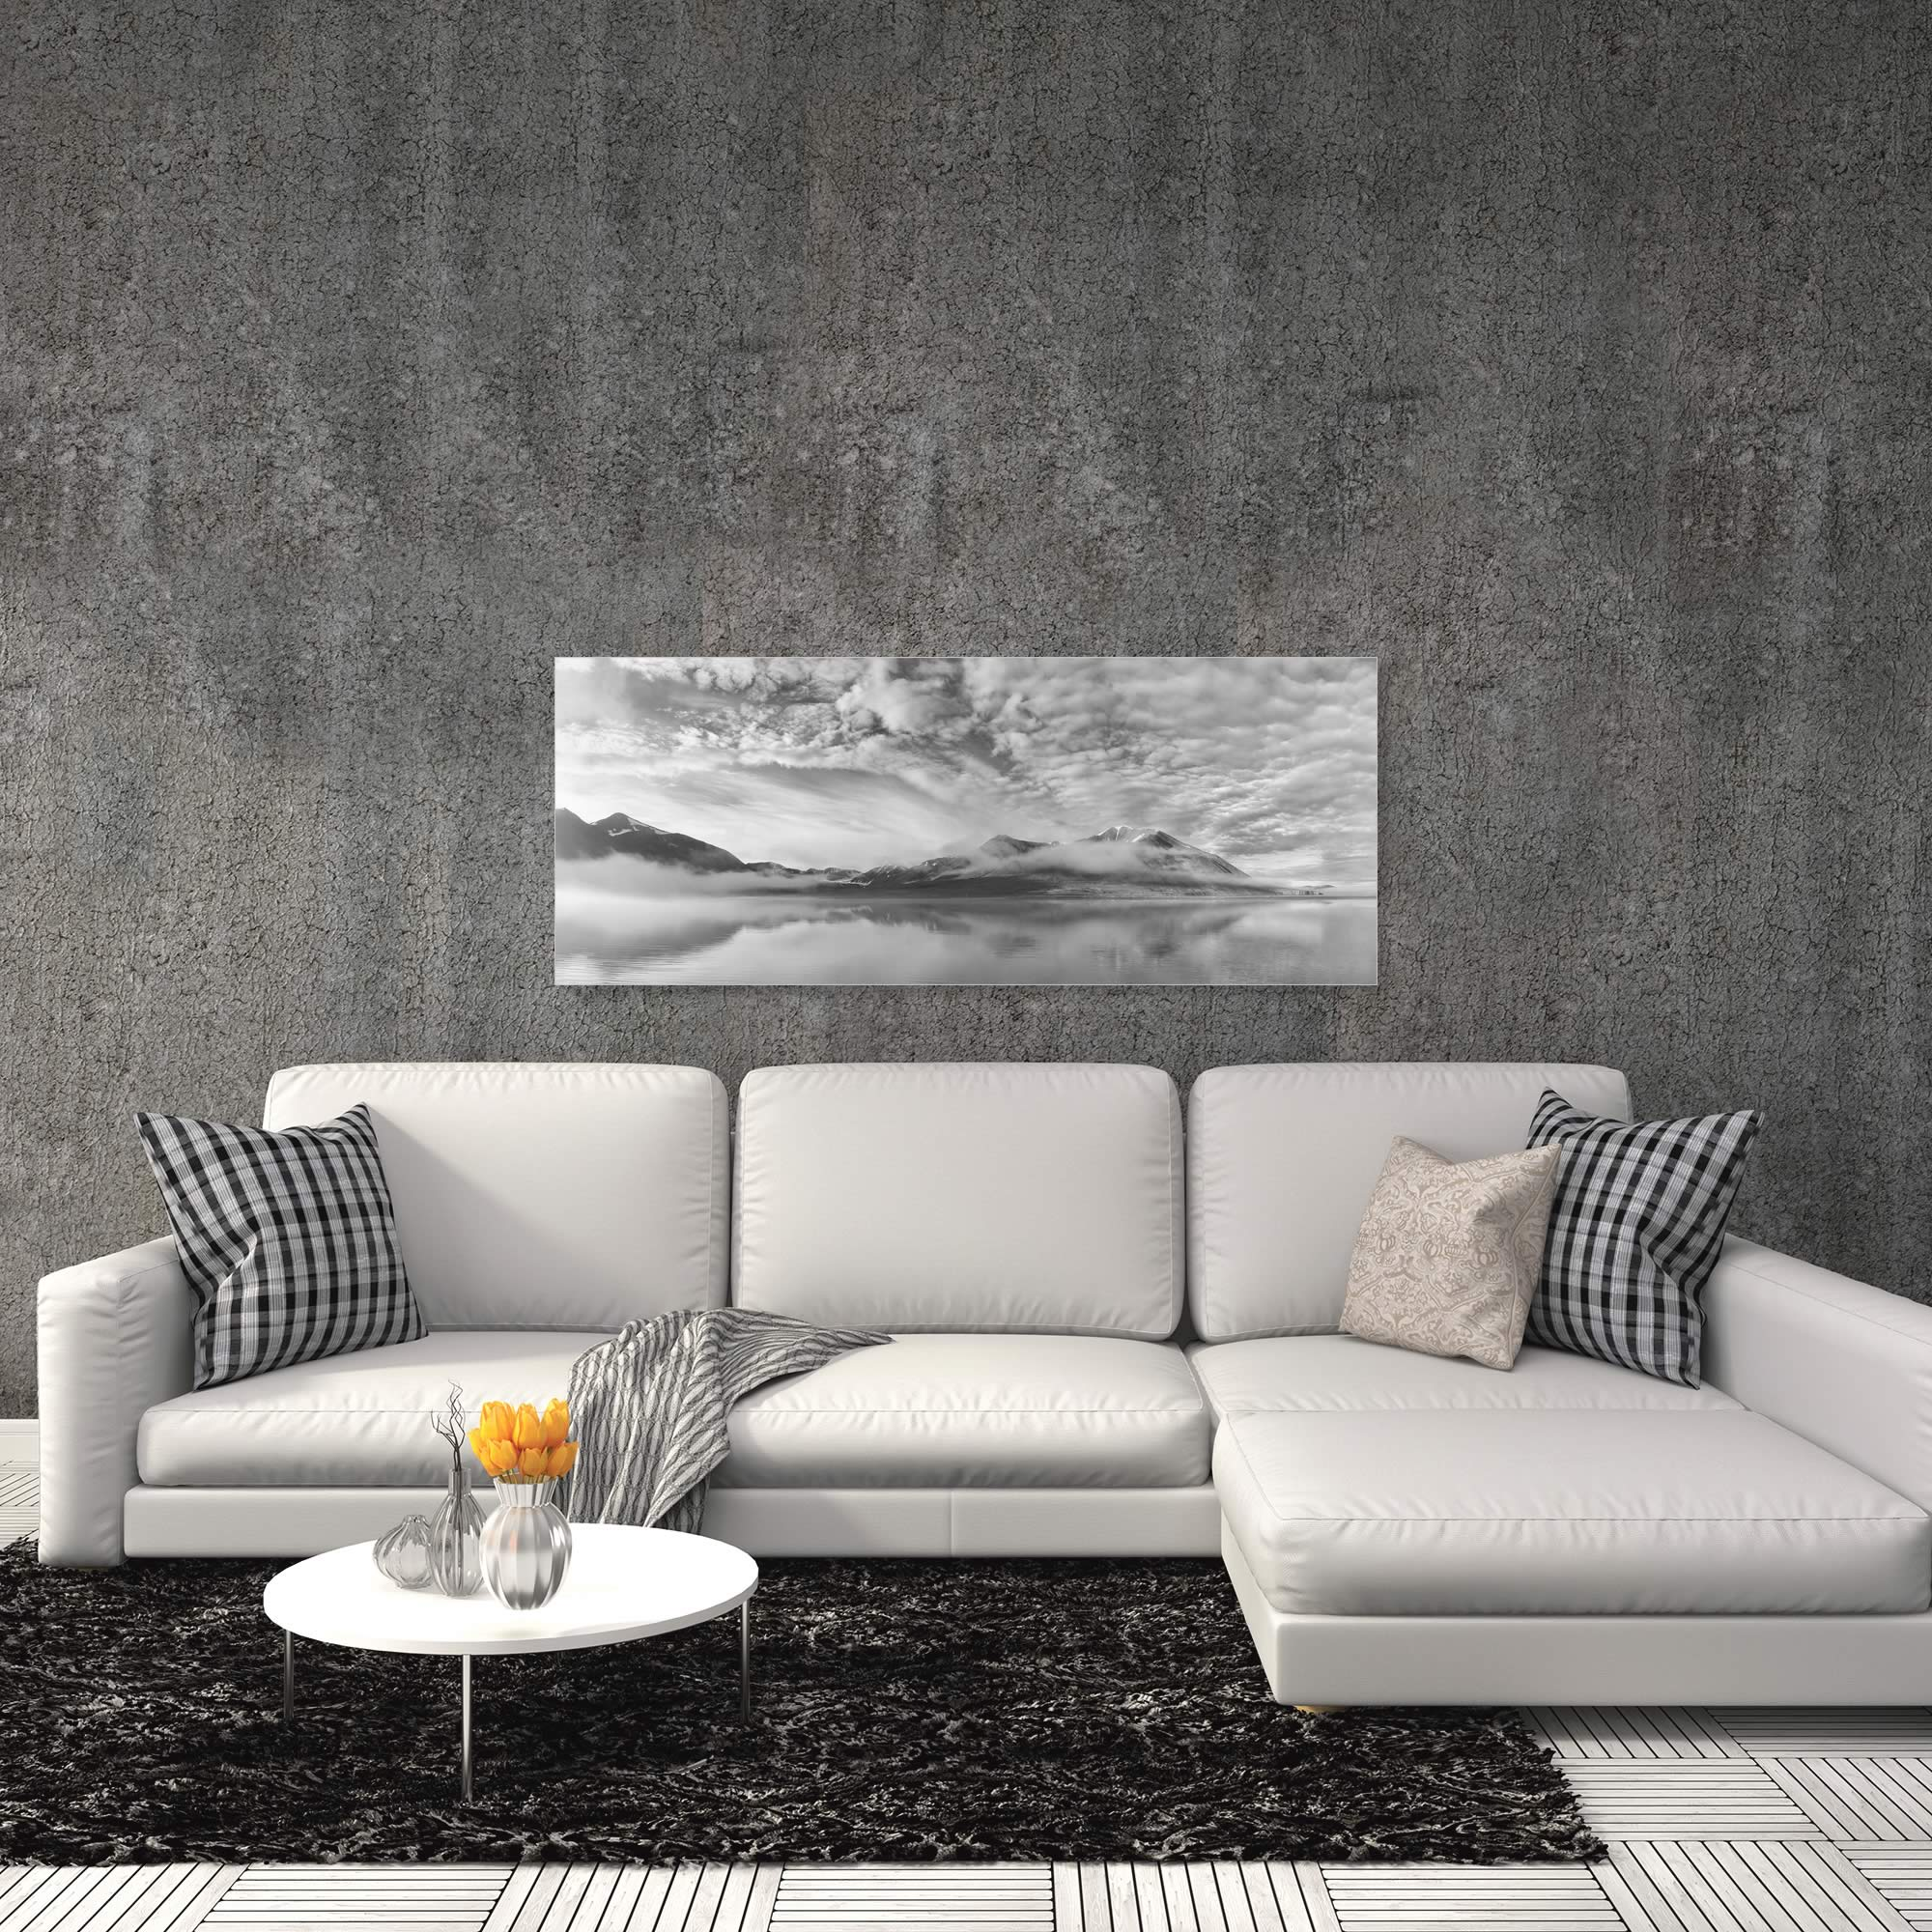 Morning Mist by Marloes van Pareren - Black and White Photography on Metal or Acrylic - Alternate View 1